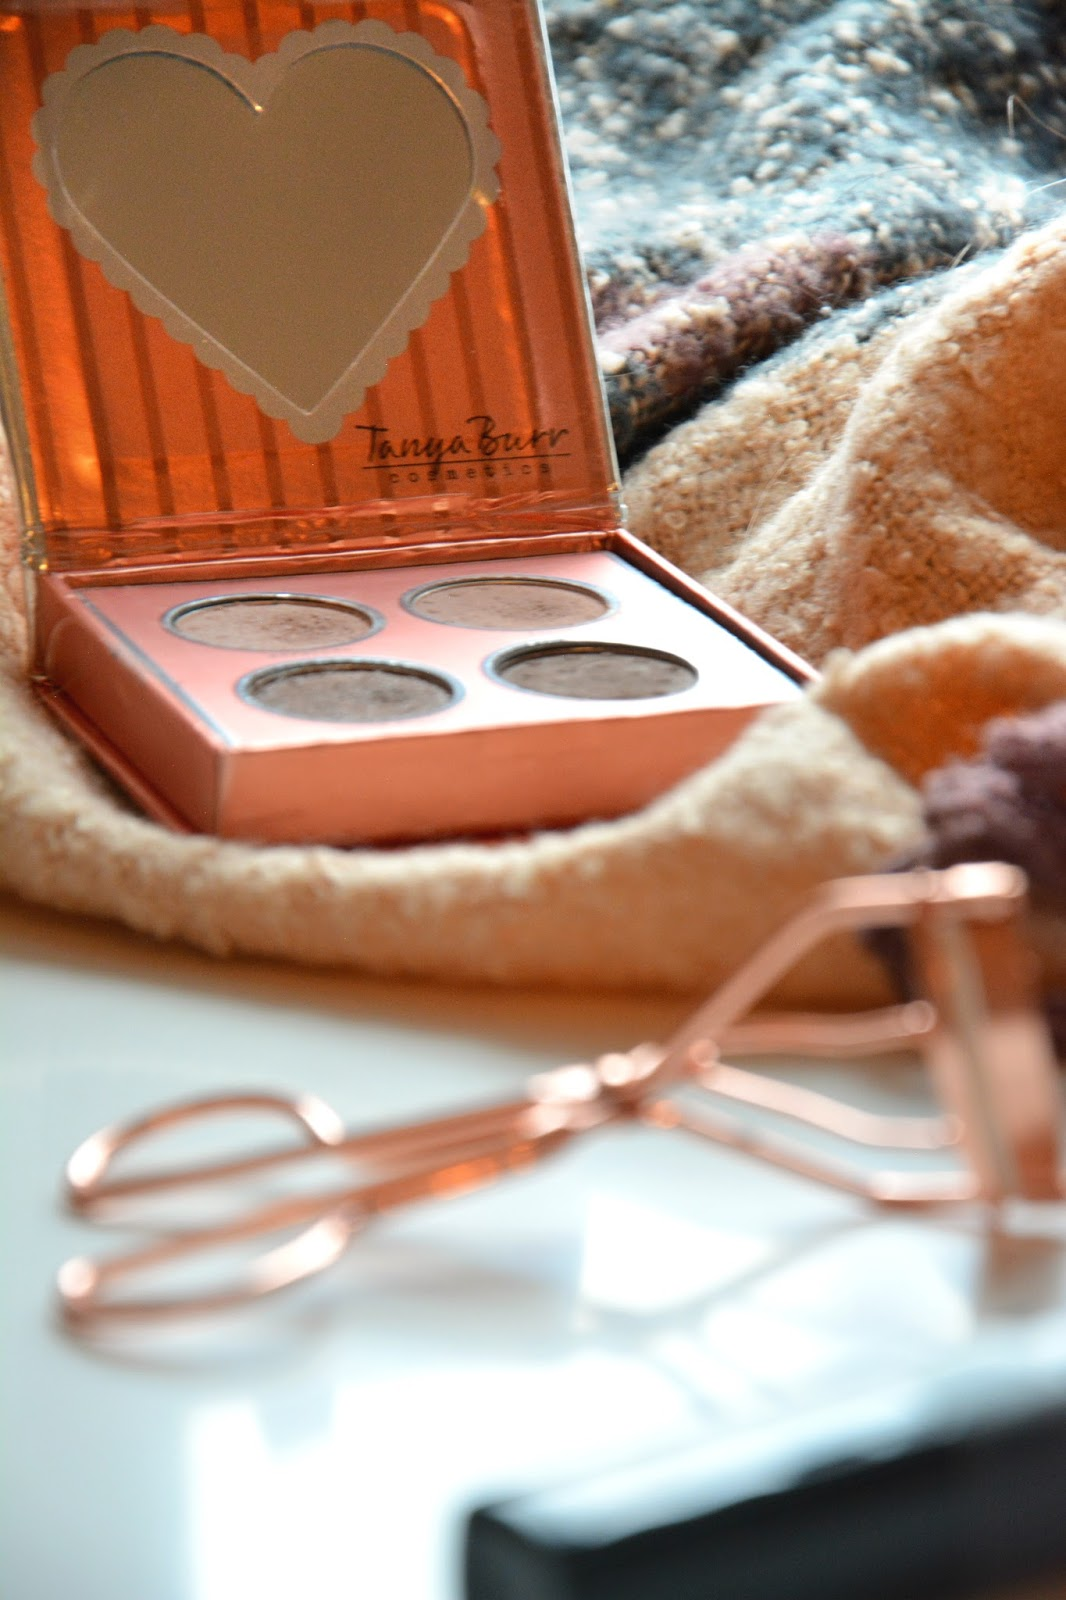 Primark Eyelash Curler, Tanya Burr Cosmetics Birthday Suit Eyeshadow Palette